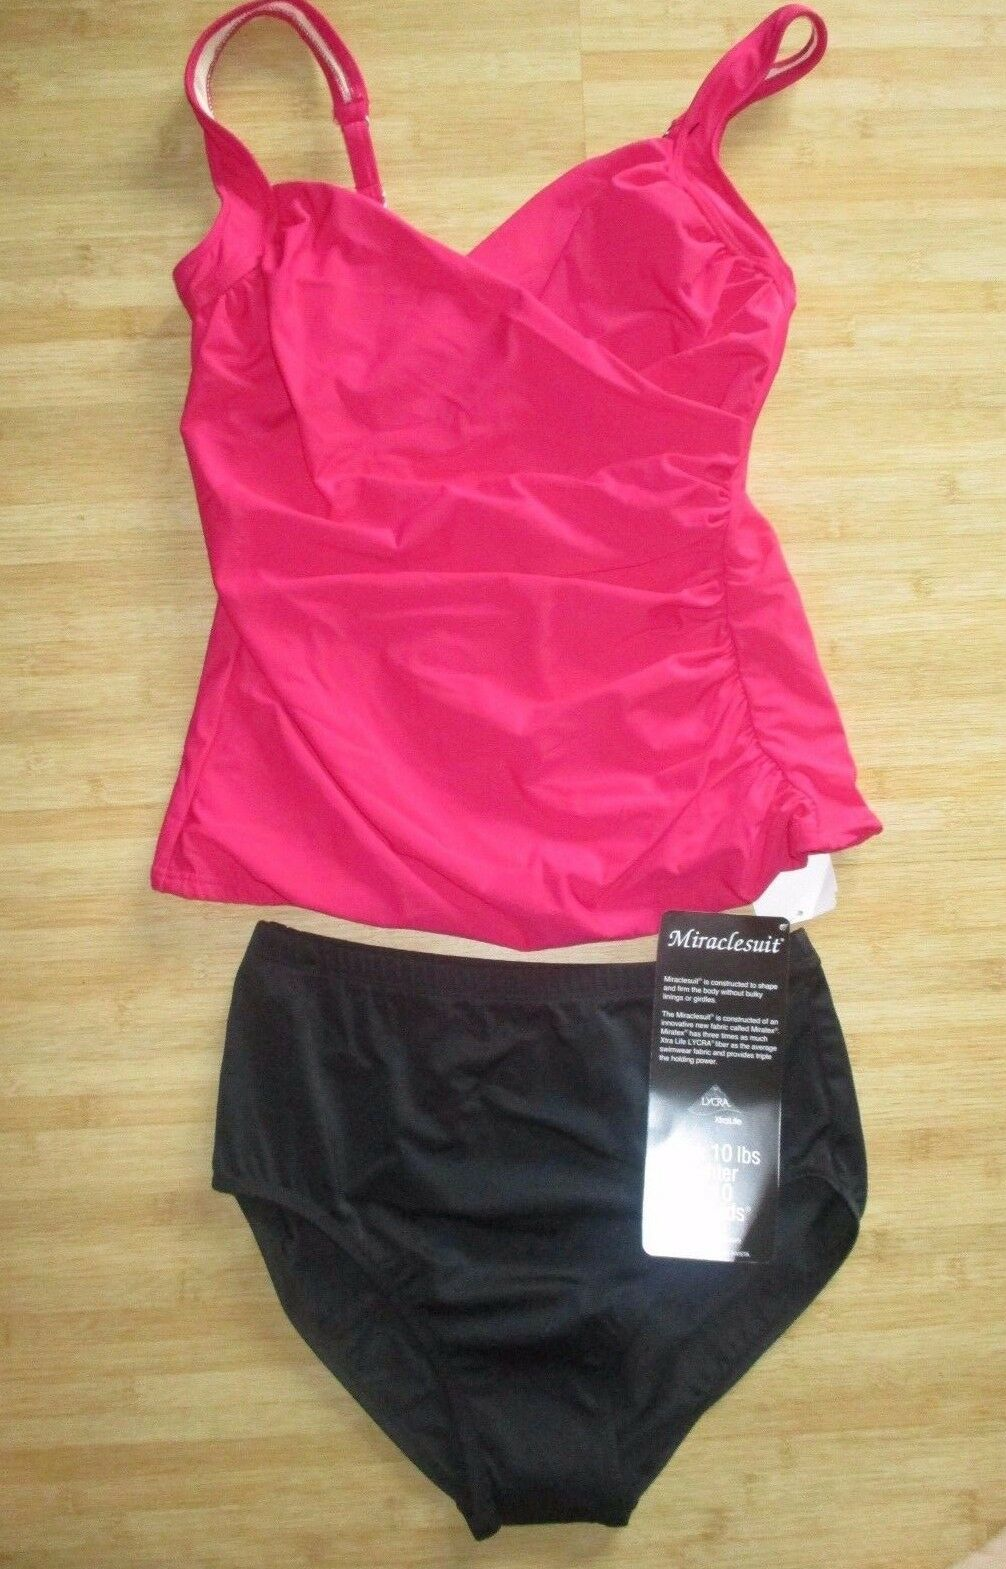 NEW MAGICSUIT MIRACLESUIT 2 PC TANKINI SWIMSUIT 10 40 Sanibel Radiant Raspberry